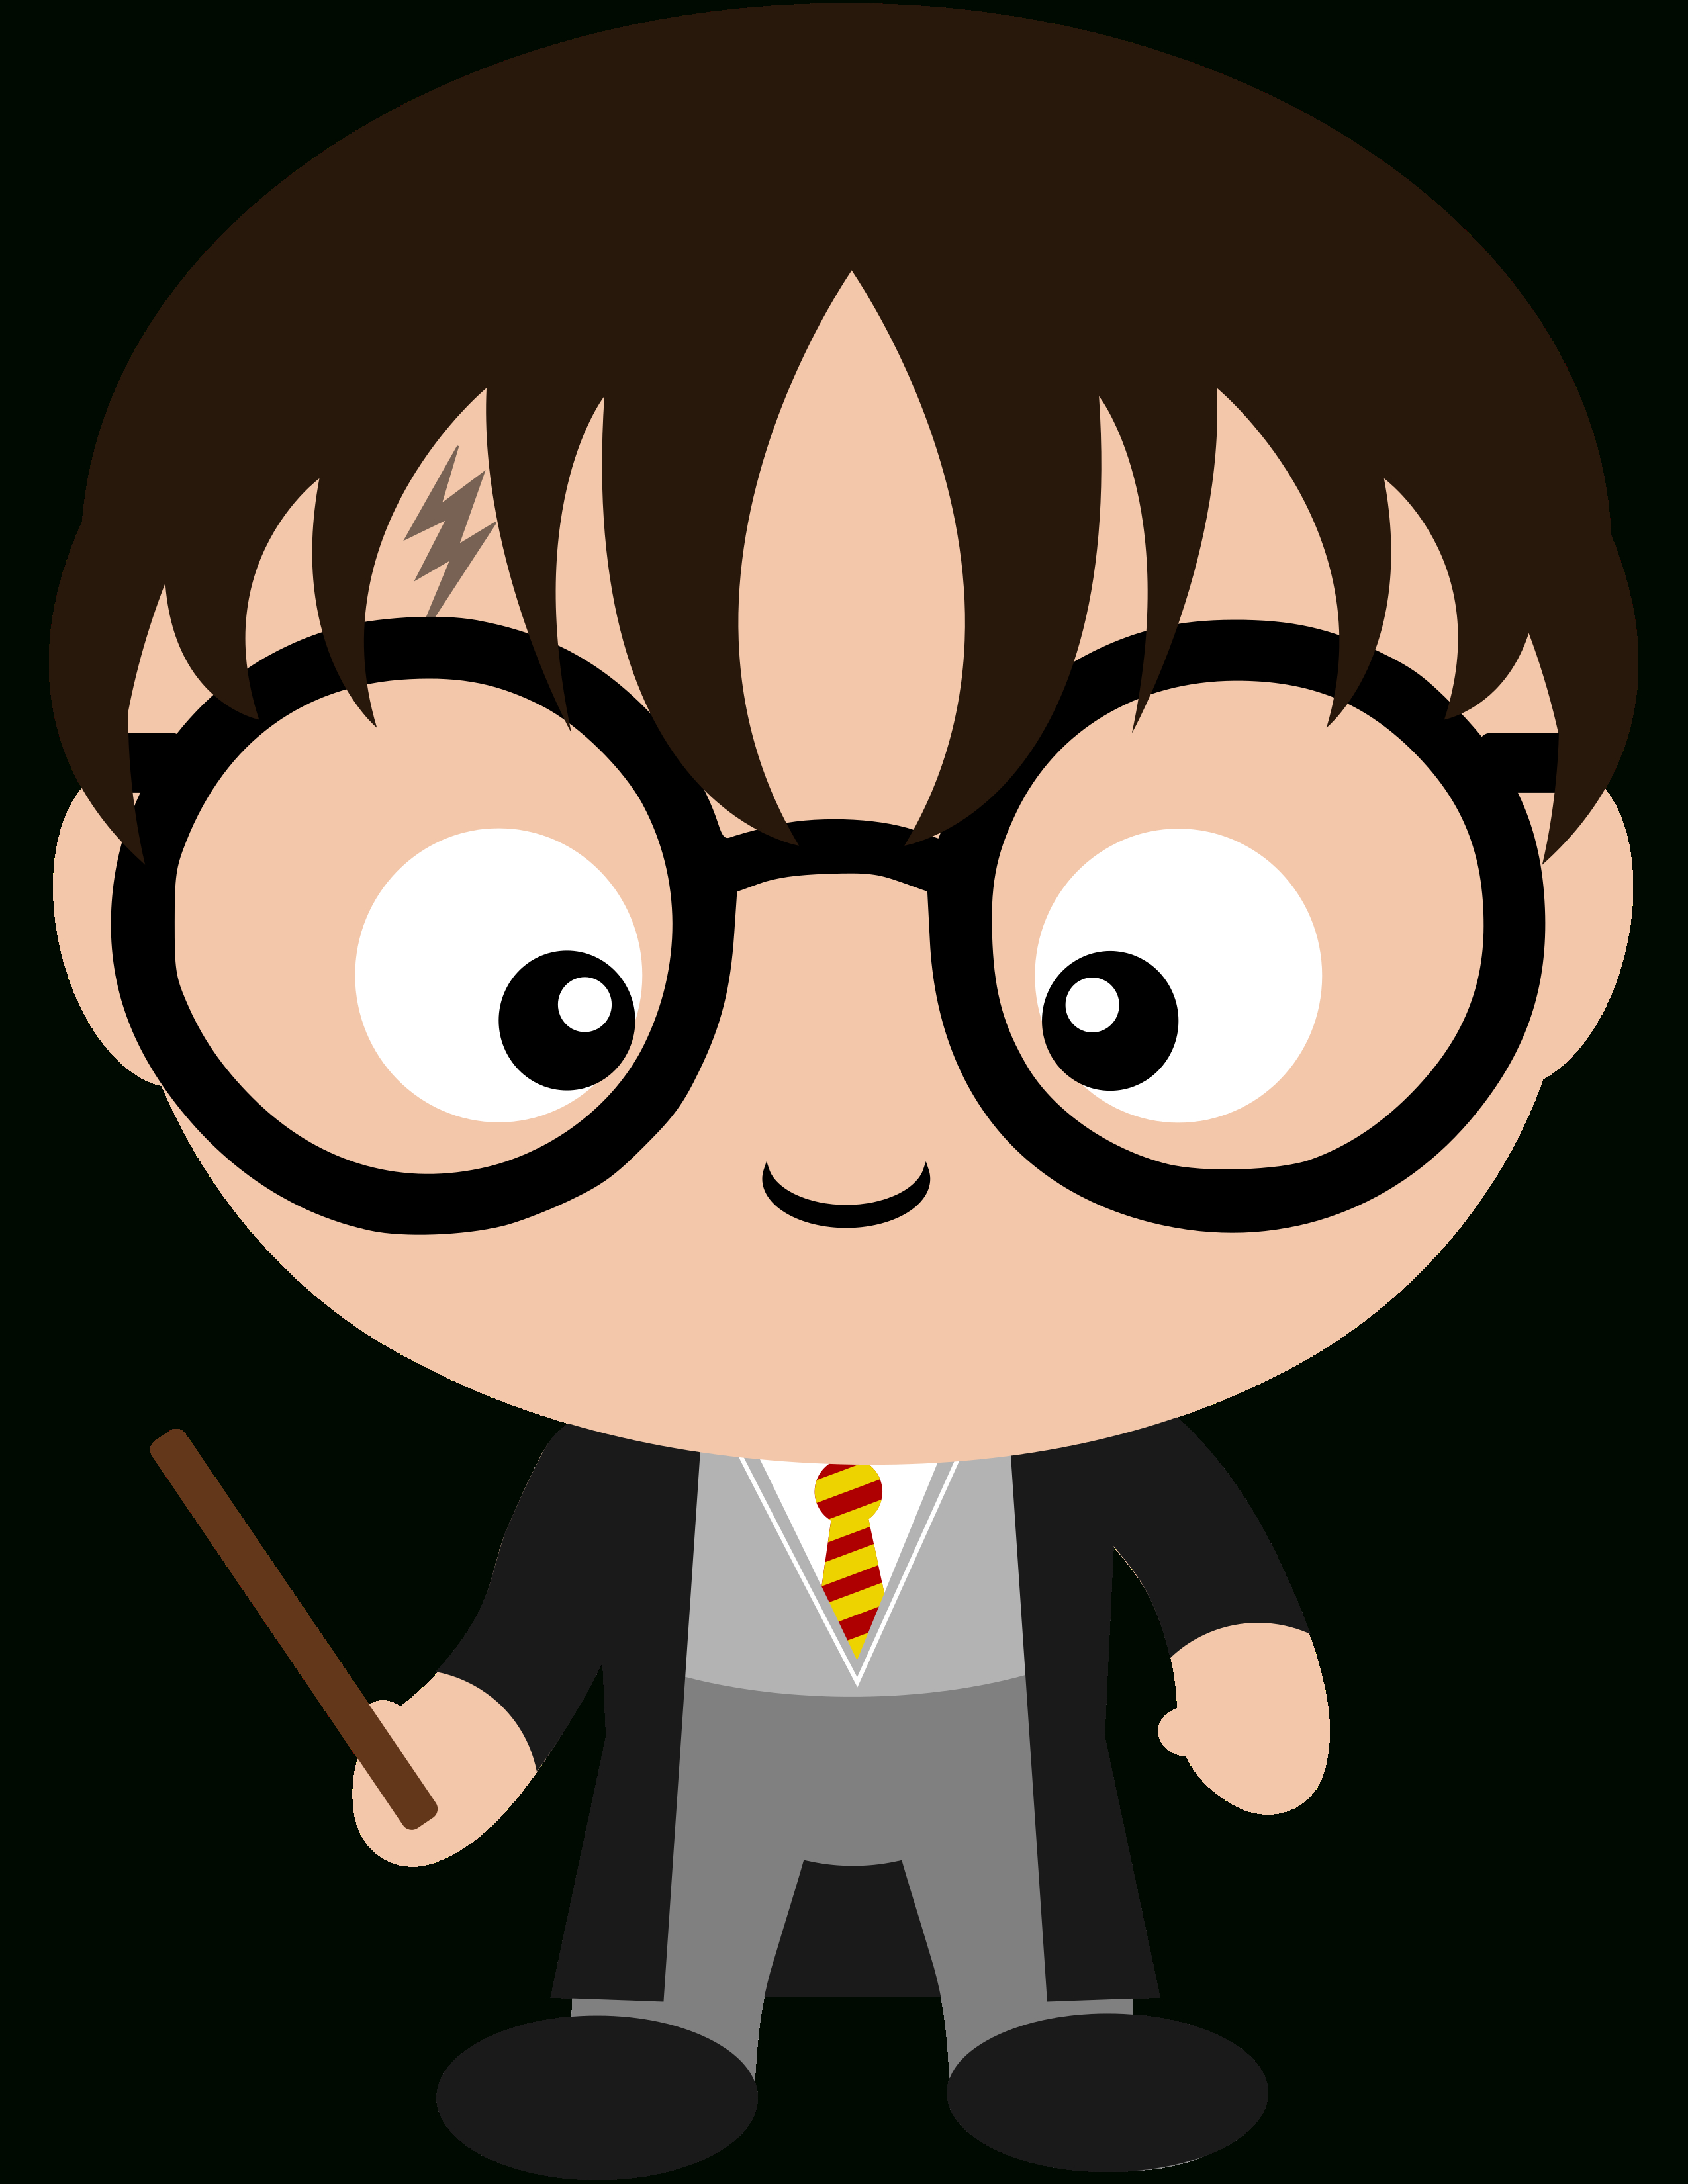 Free Harry Potter Clipart | Free Download Best Free Harry Potter - Free Printable Harry Potter Clip Art